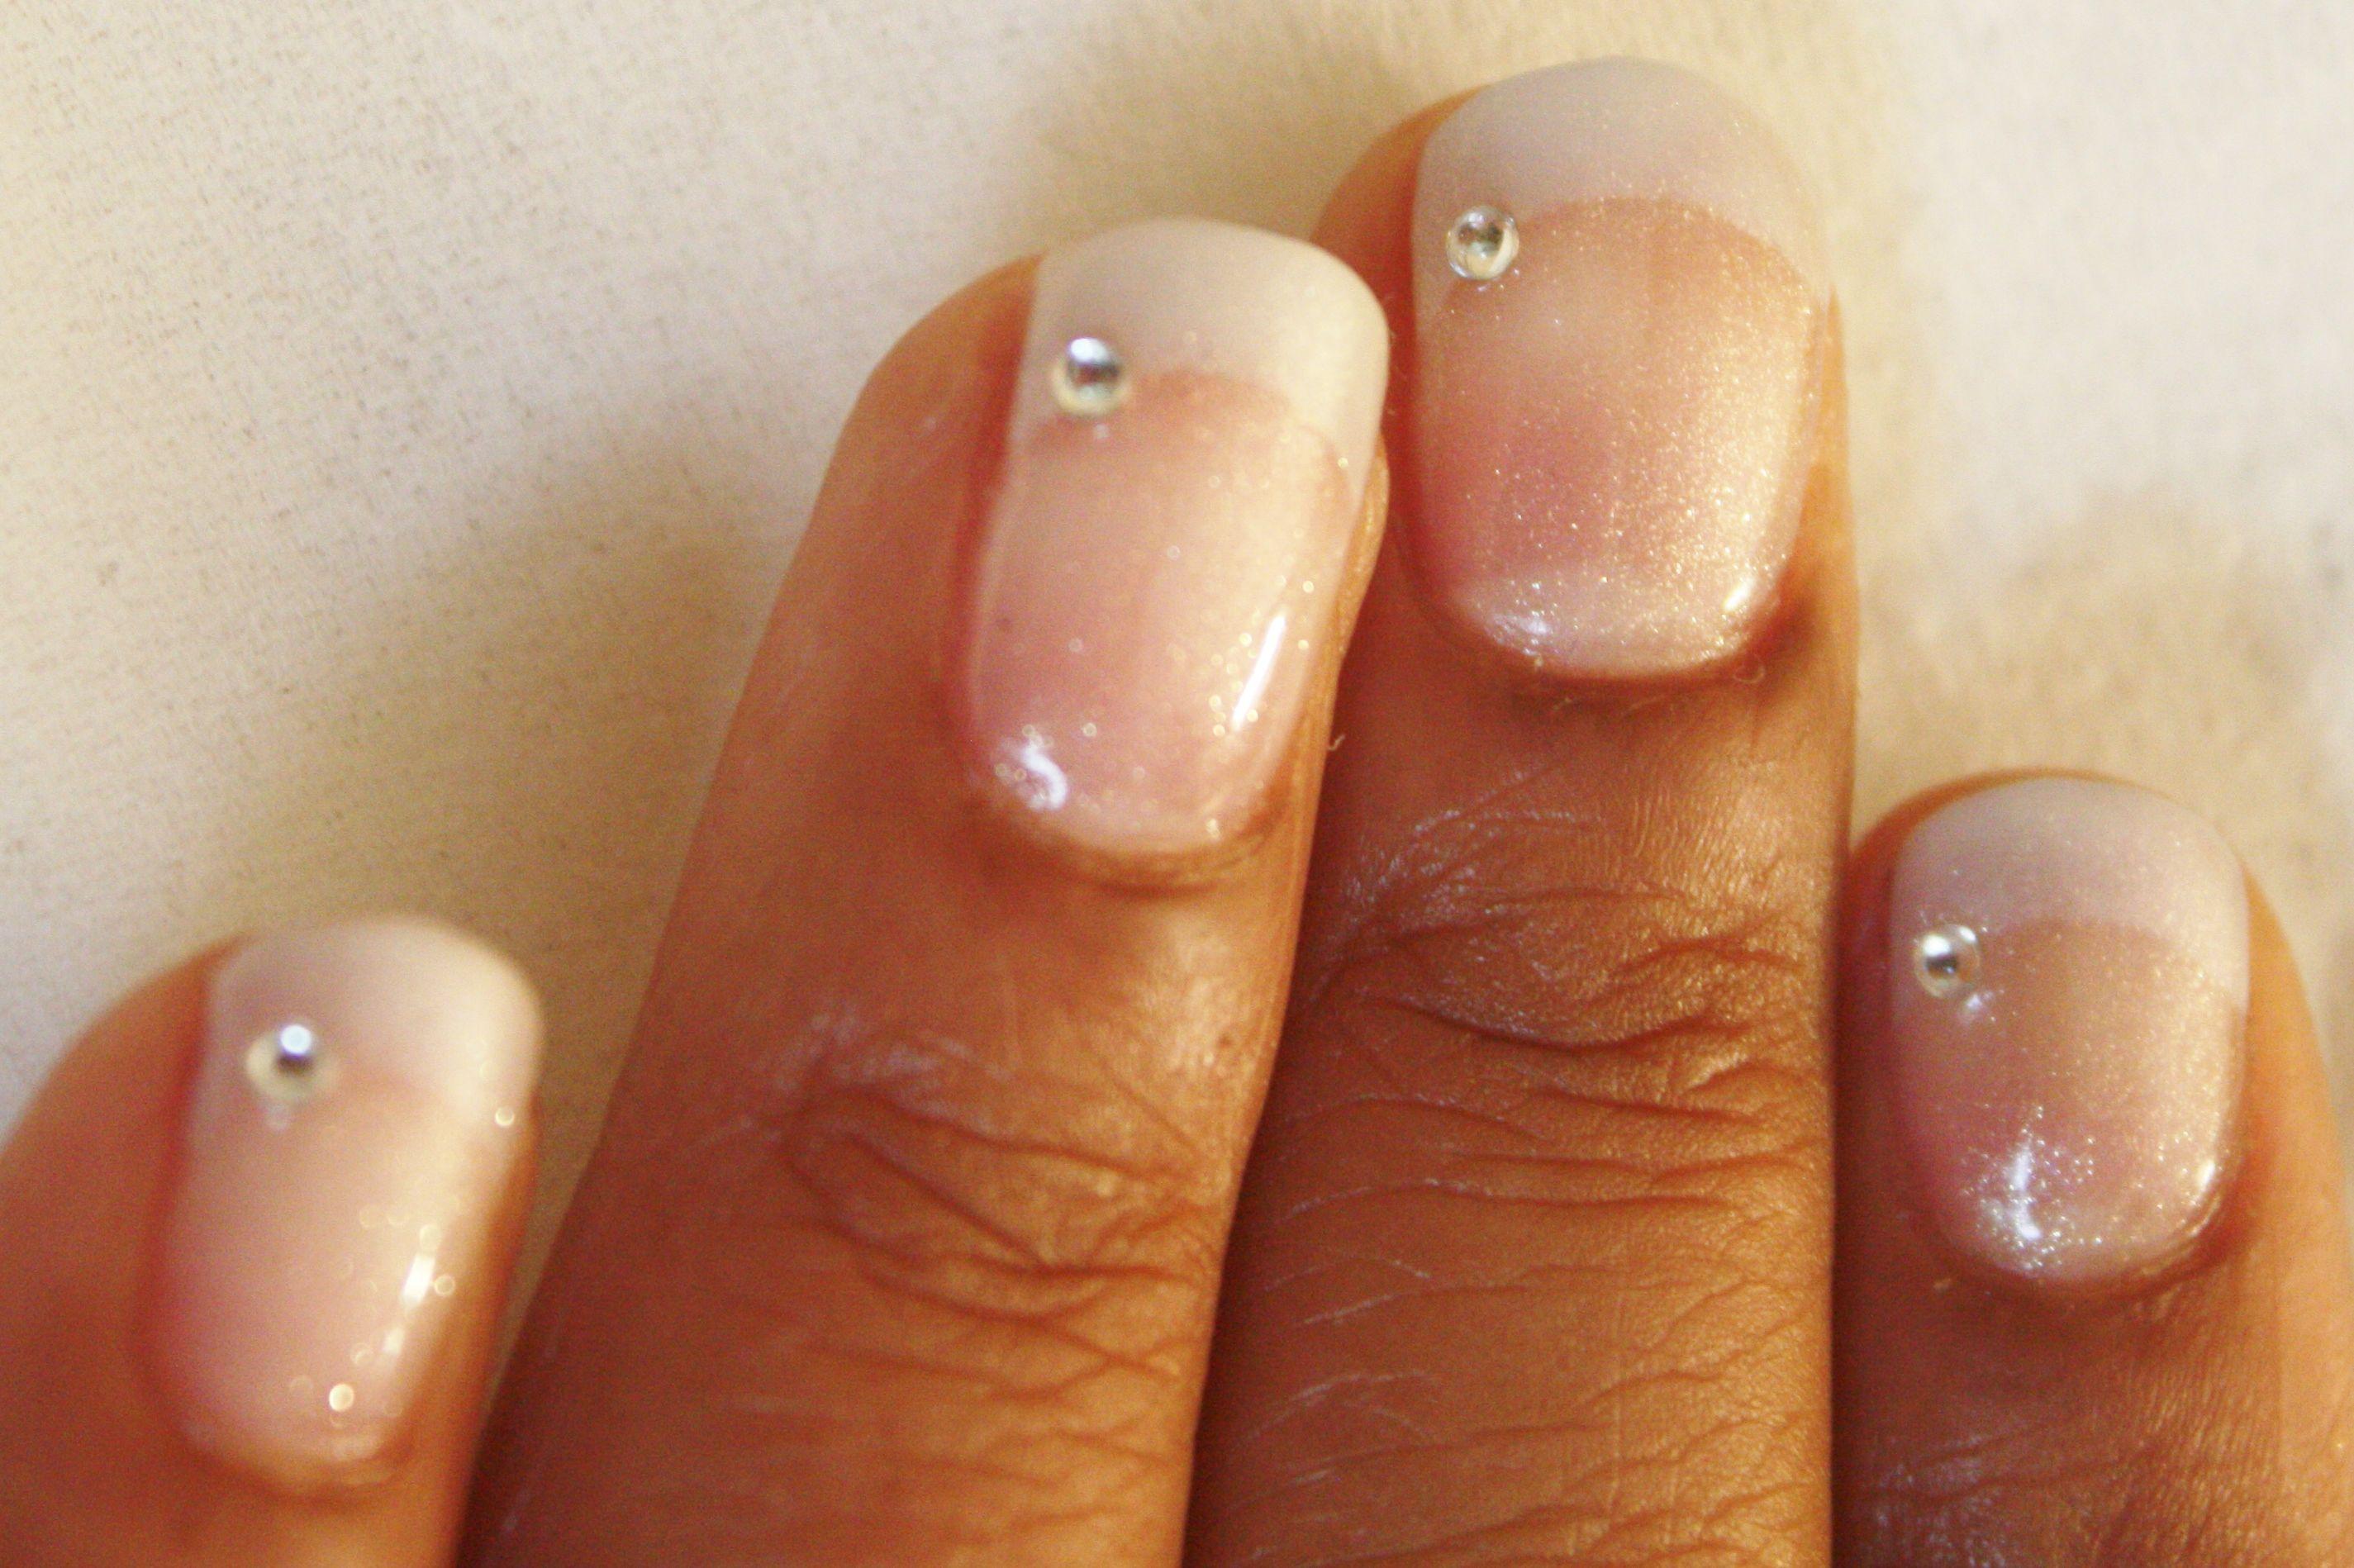 Dashing Diva french wrap tips, Shellac finish incl vip silver and ...